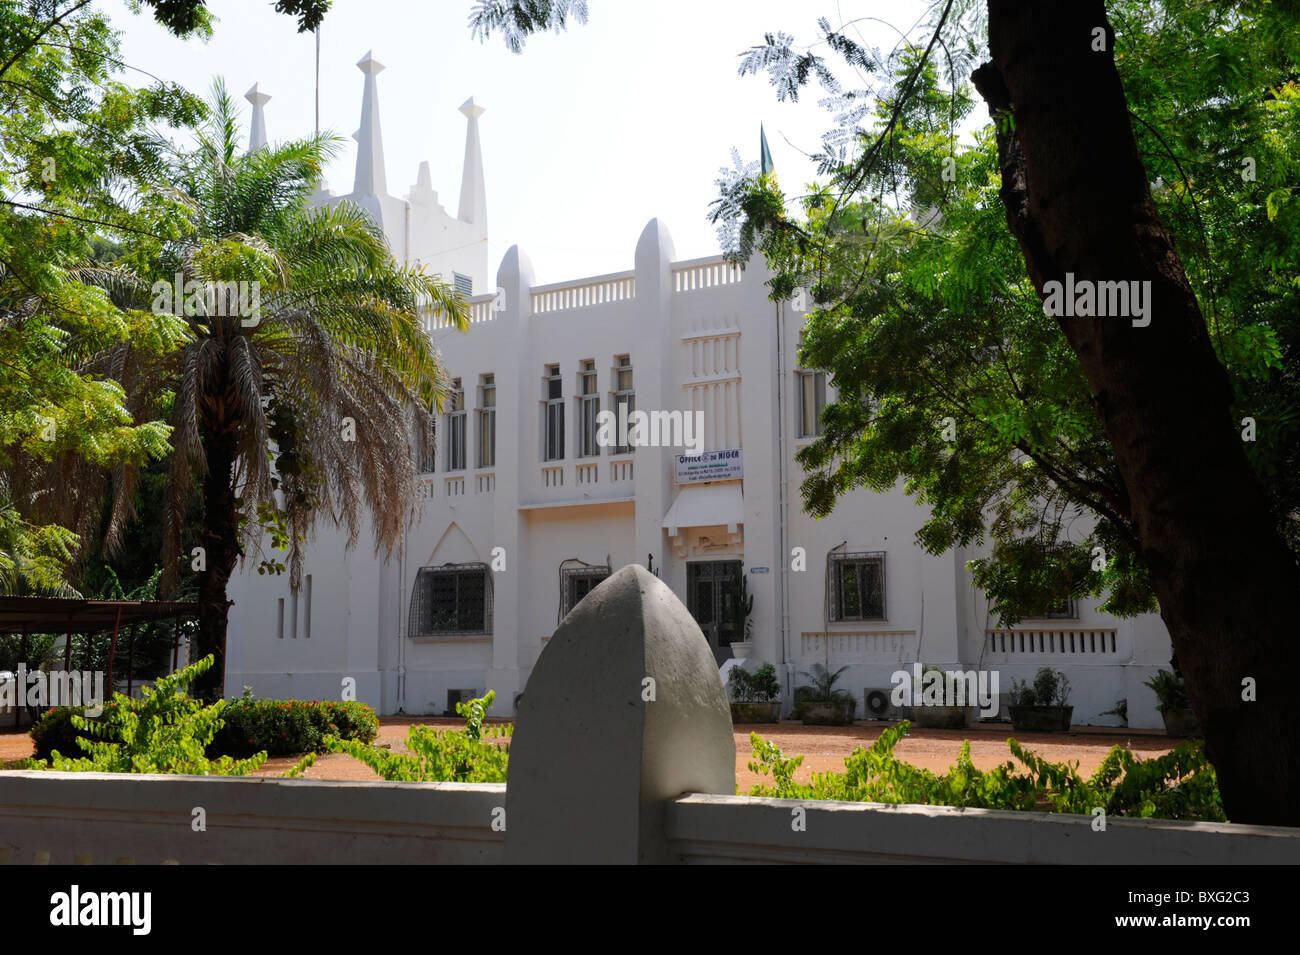 Office of the 'Office du Niger' in Segou, Mali - Stock Image